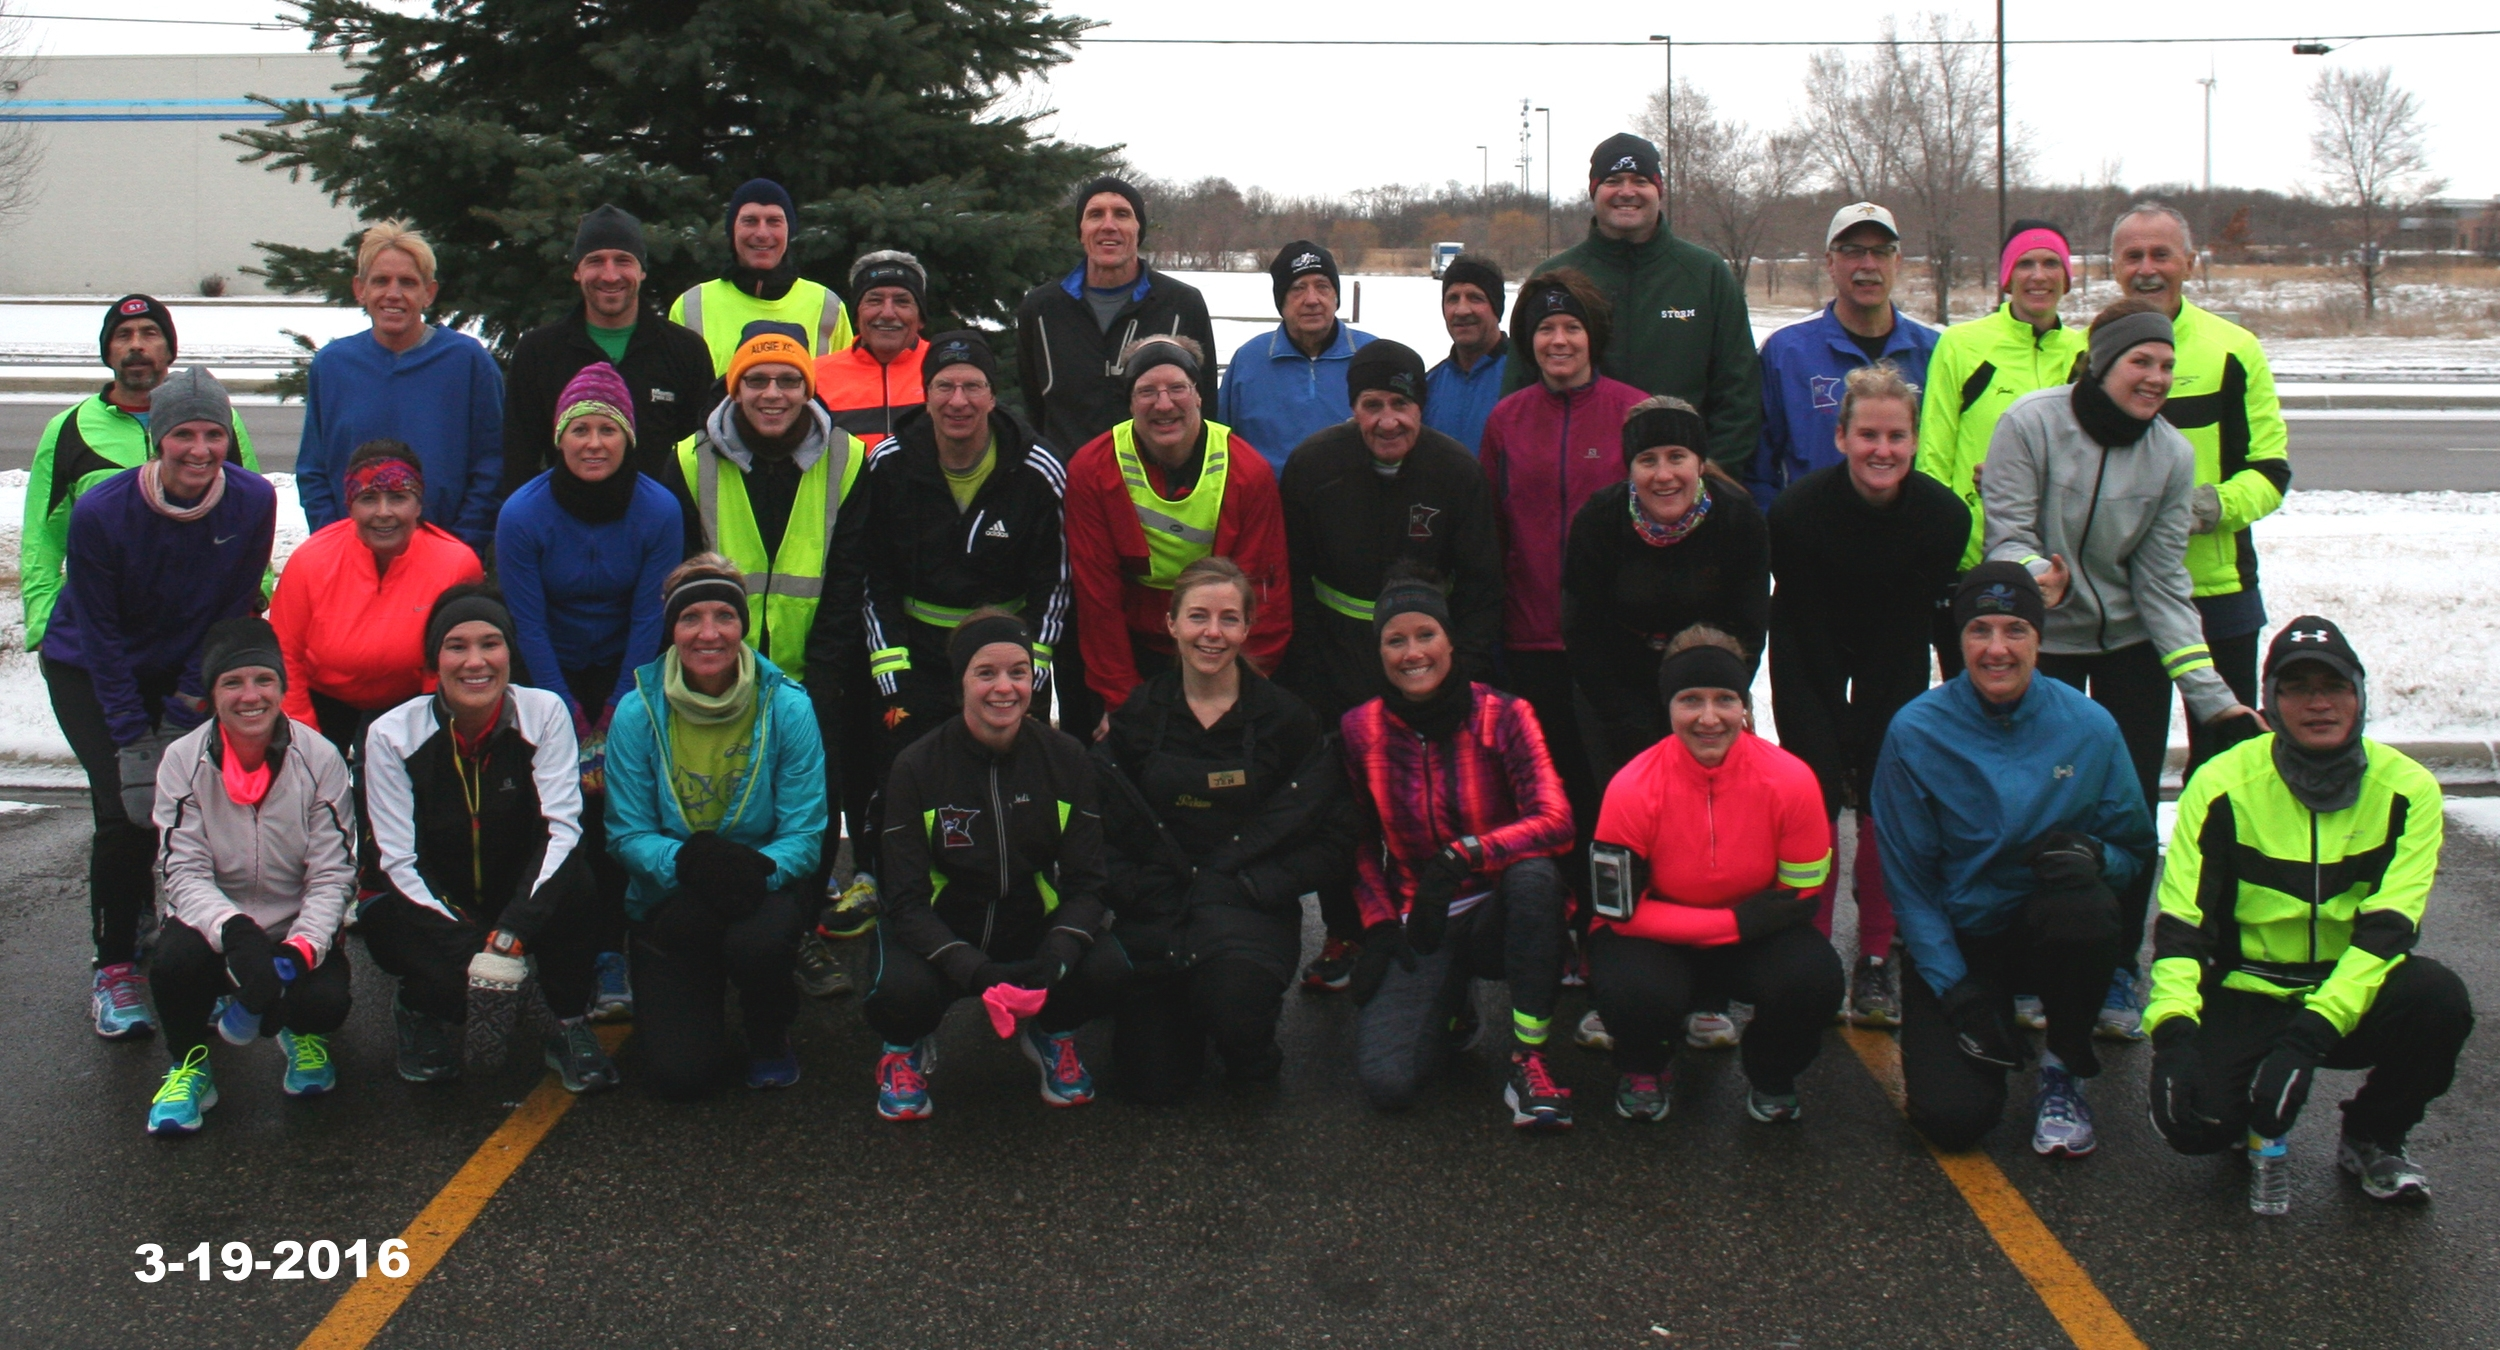 Breakfast Run 3-19-2016